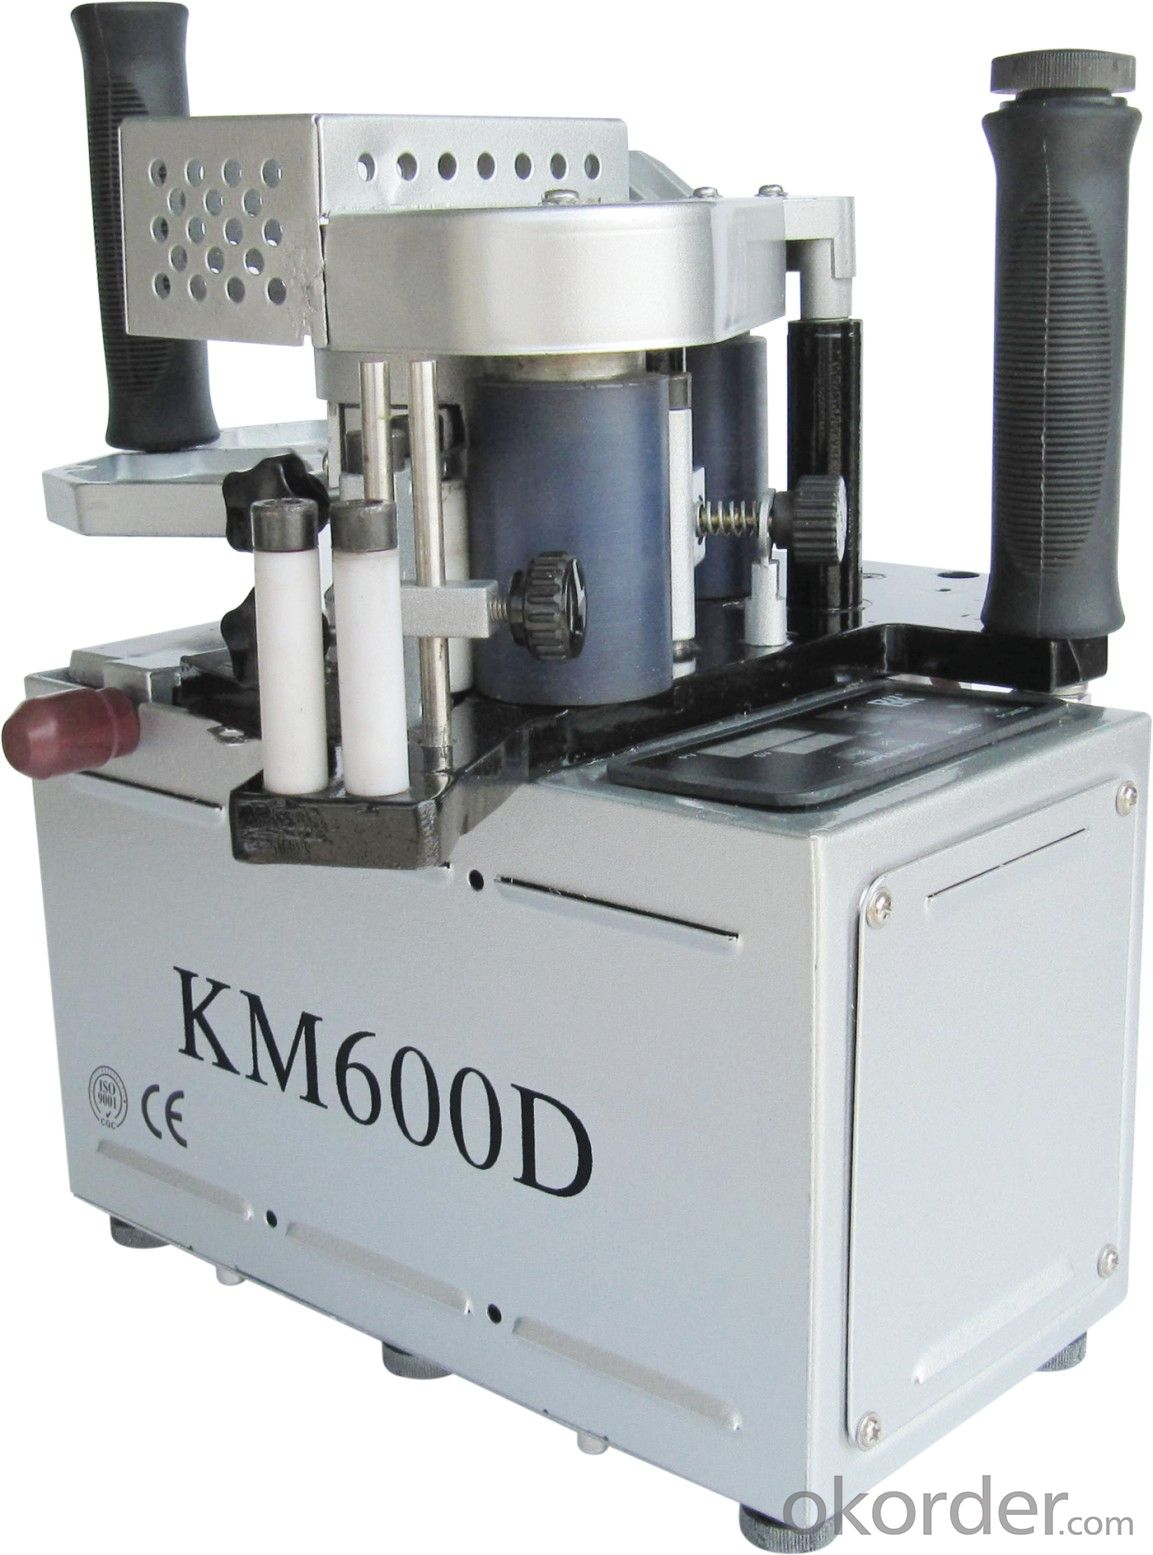 Portable Edge Bander KM600D Edge Banding Machines of Different Kinds